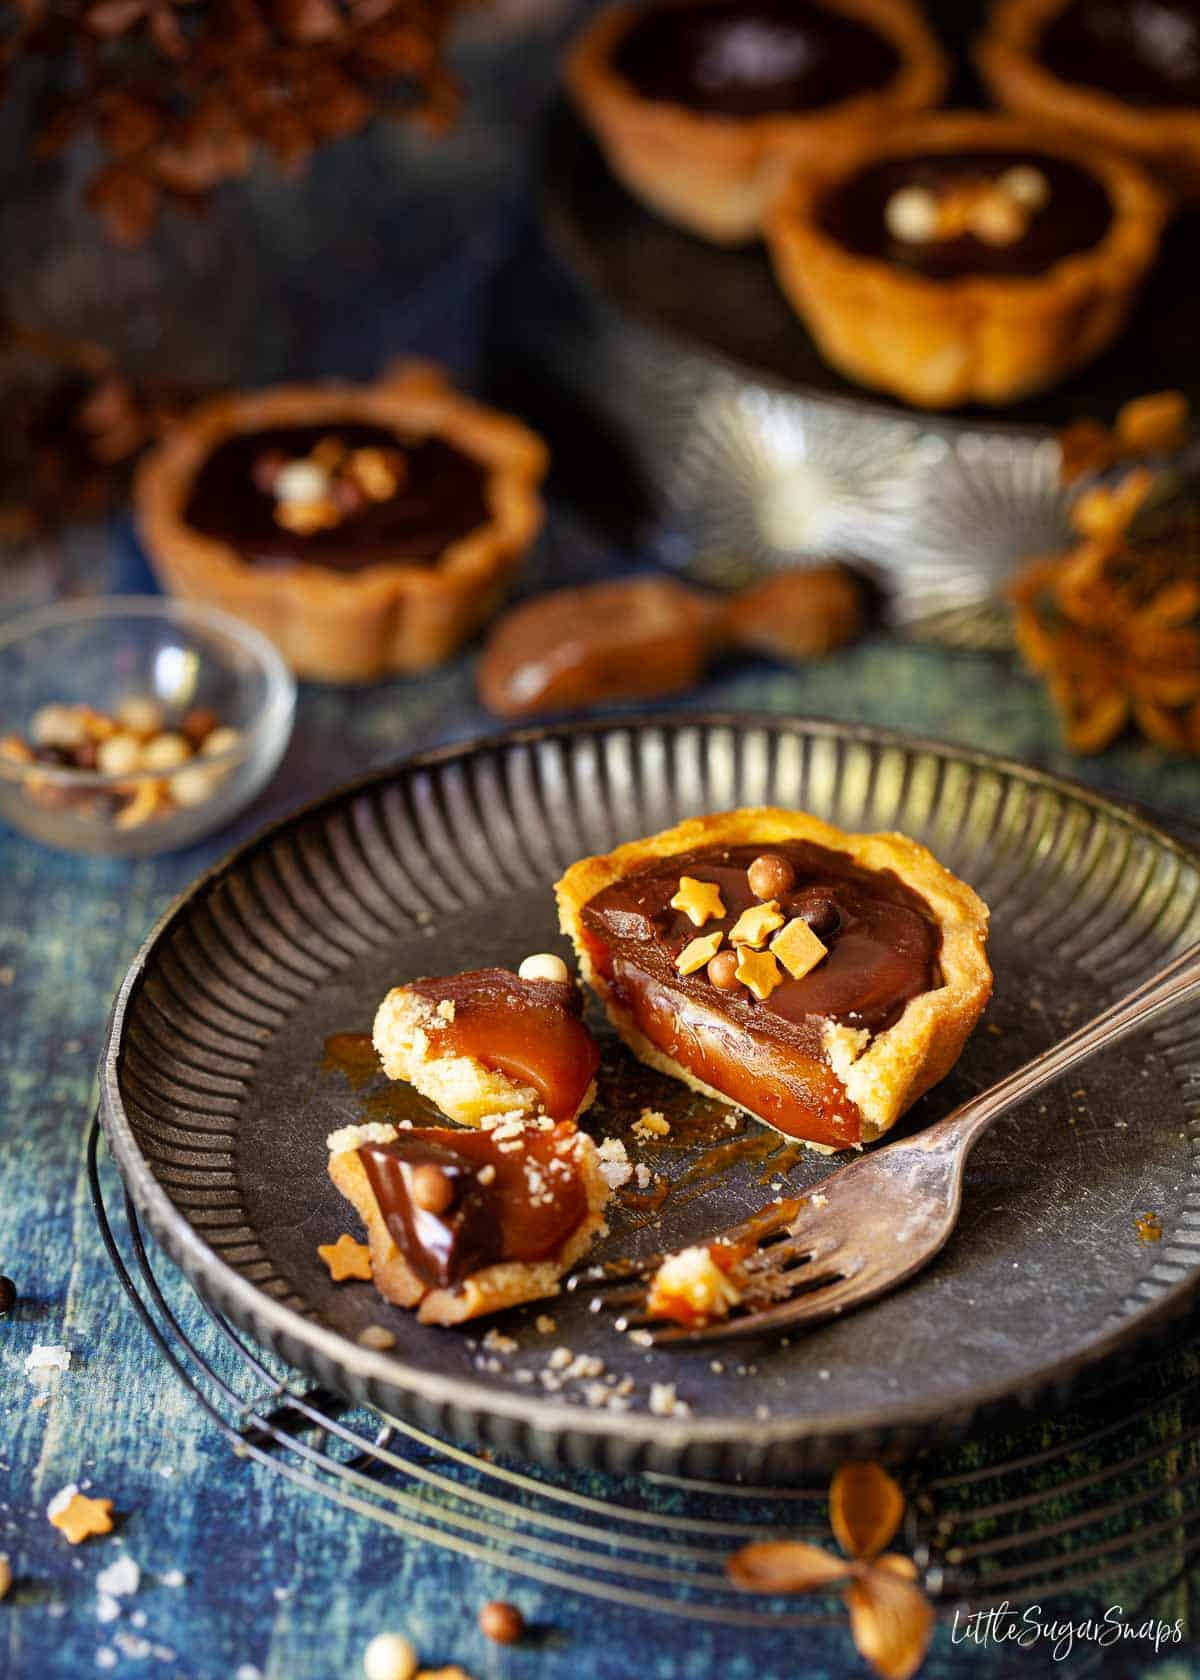 A cut-open mini caramel tart on a metal plate with more tarts in the background.